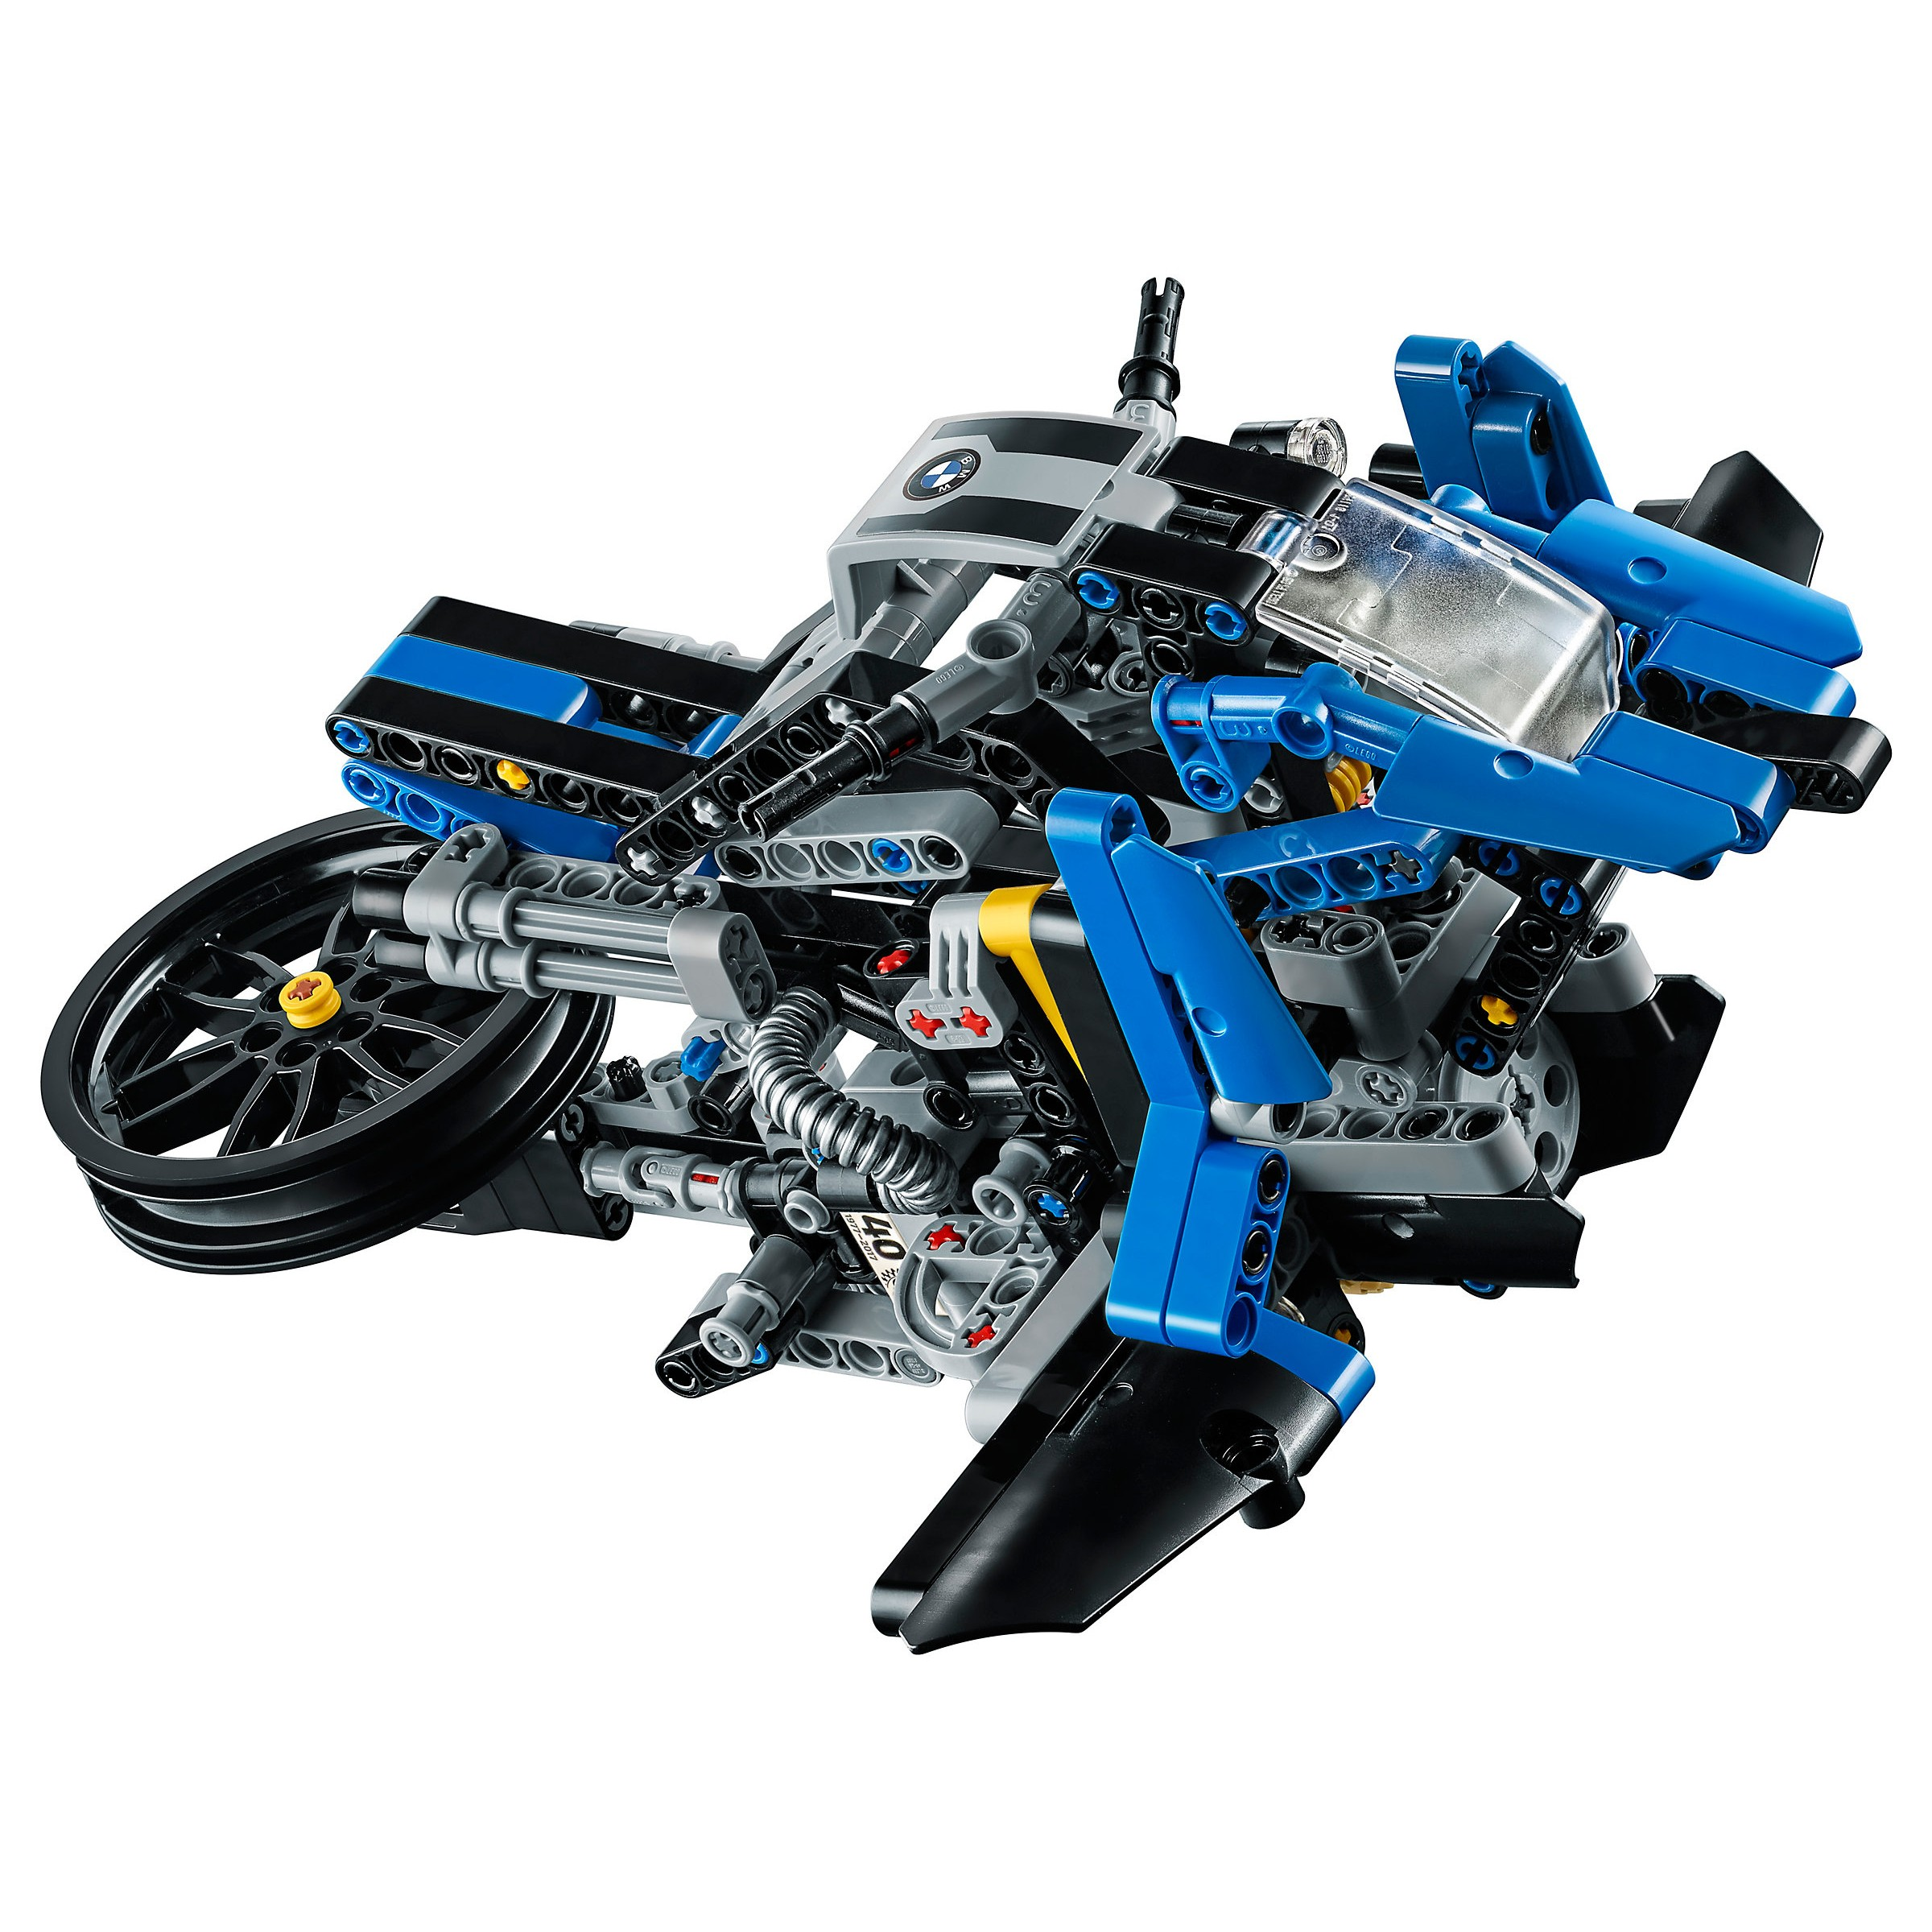 lego 42063 technic bmw r 1200 gs adventure at hobby warehouse. Black Bedroom Furniture Sets. Home Design Ideas